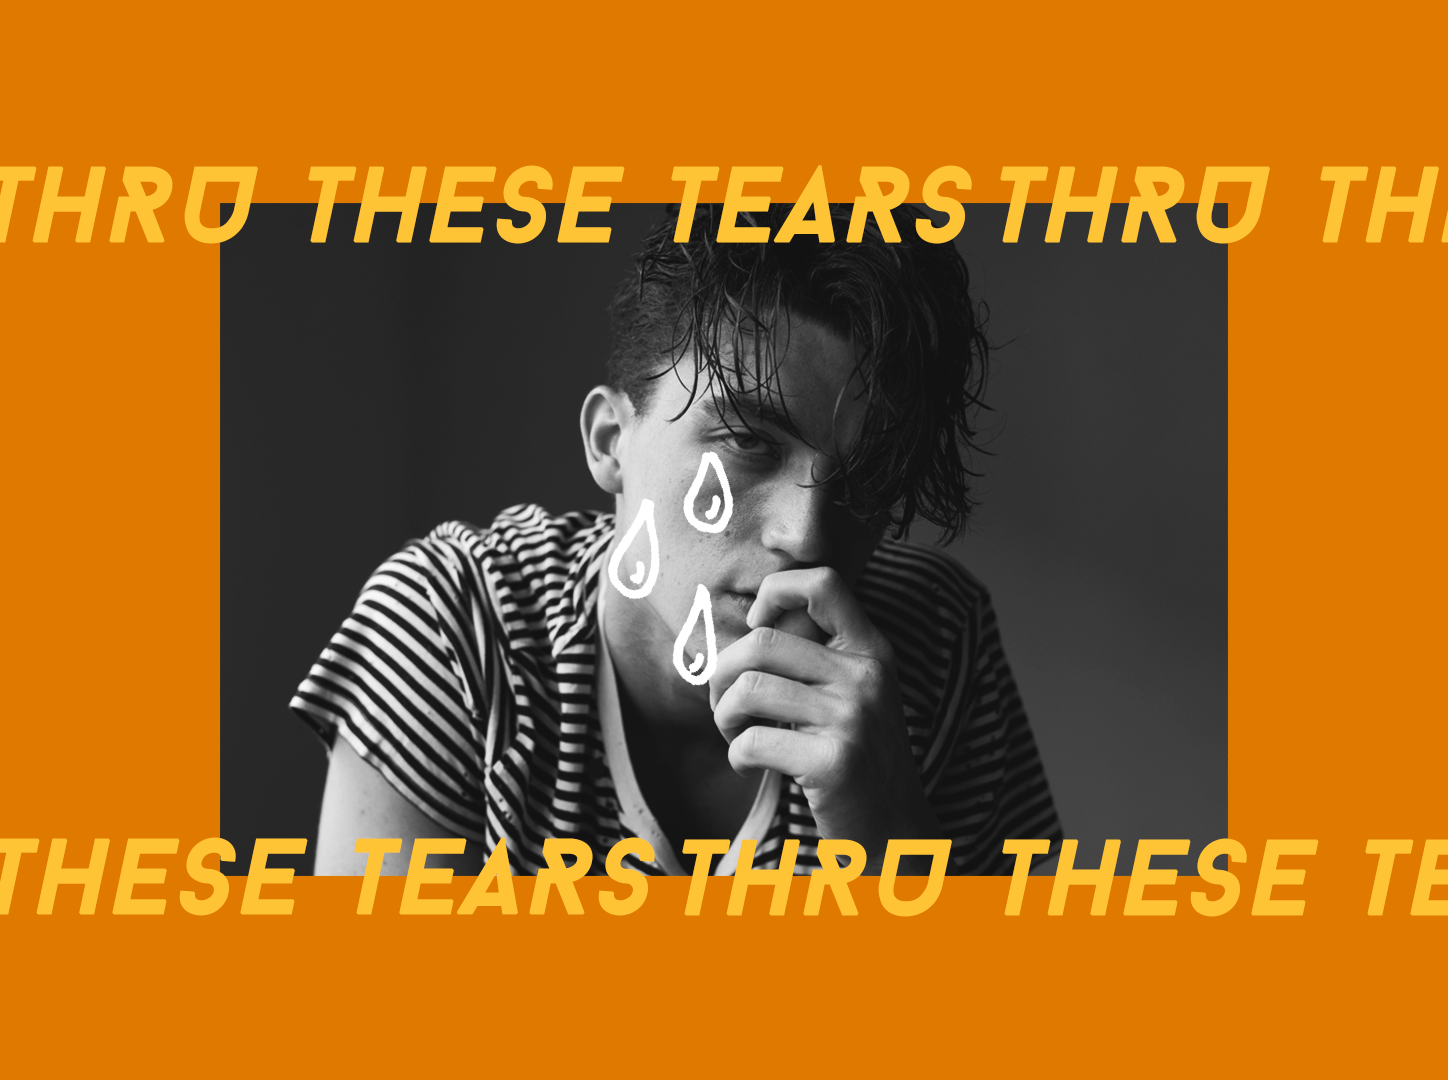 LANY Thru These Tears